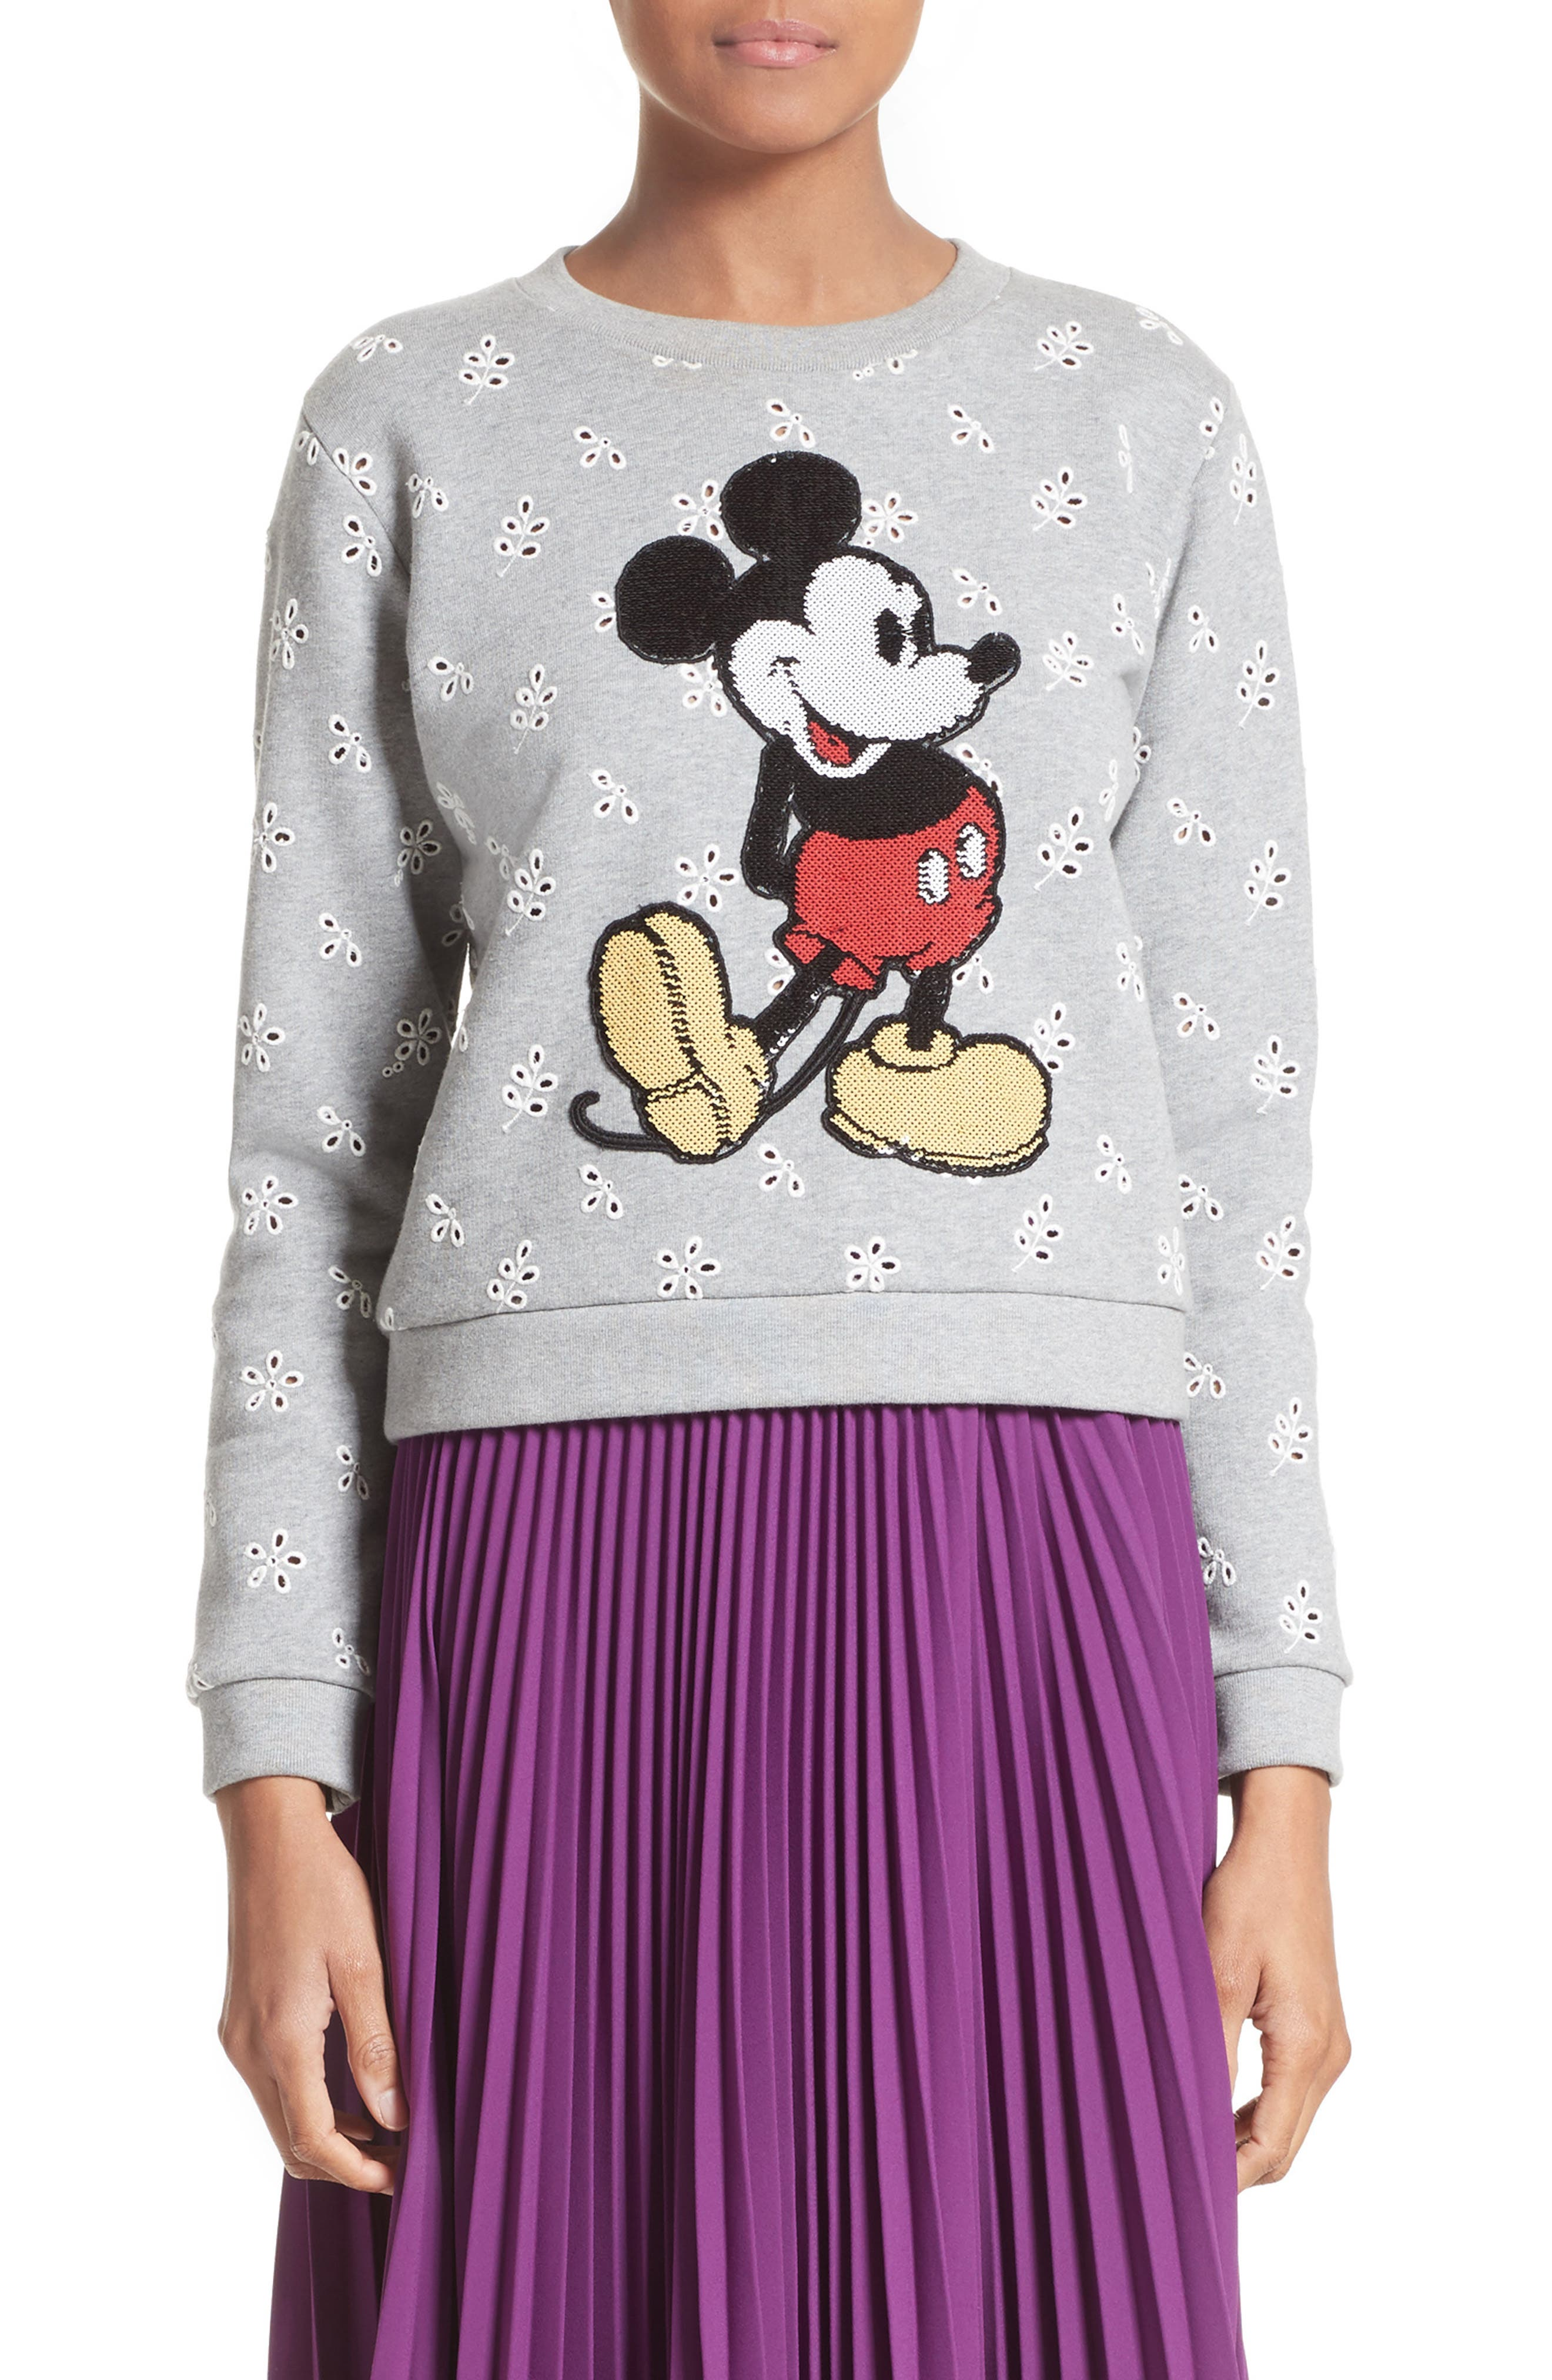 Alternate Image 1 Selected - MARC JACOBS Embellished Mickey Shrunken Sweatshirt